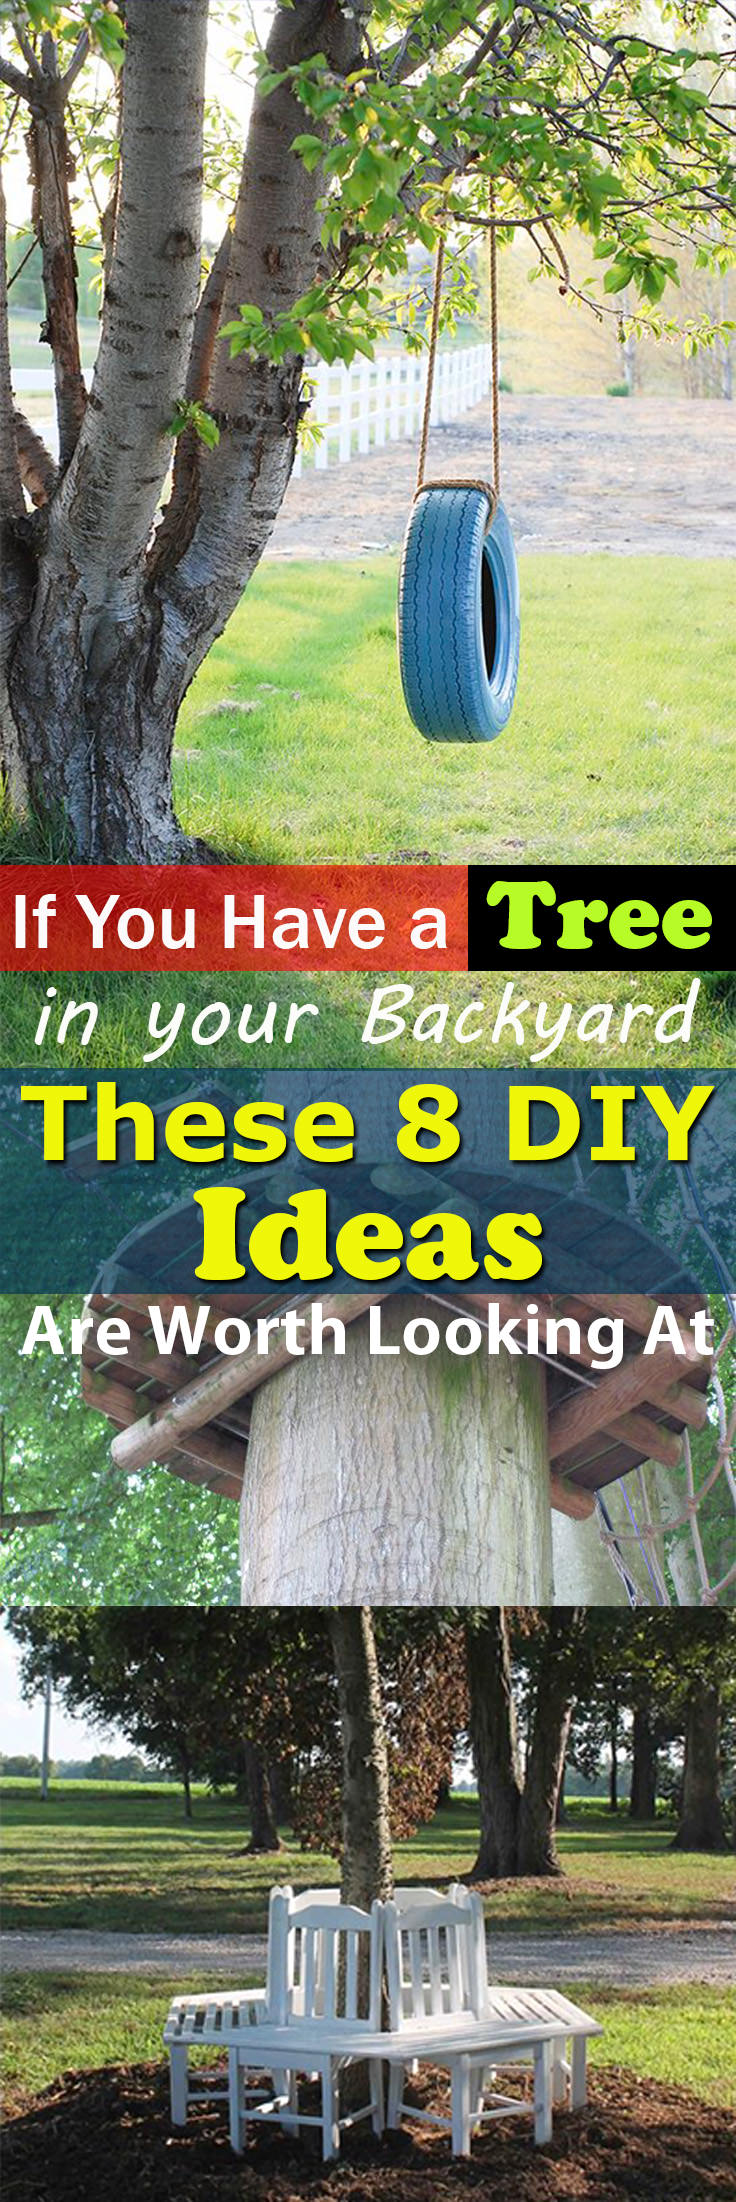 Do you have a tree in your backyard? Take help of it to complete one of these 8 DIY Tree Projects!